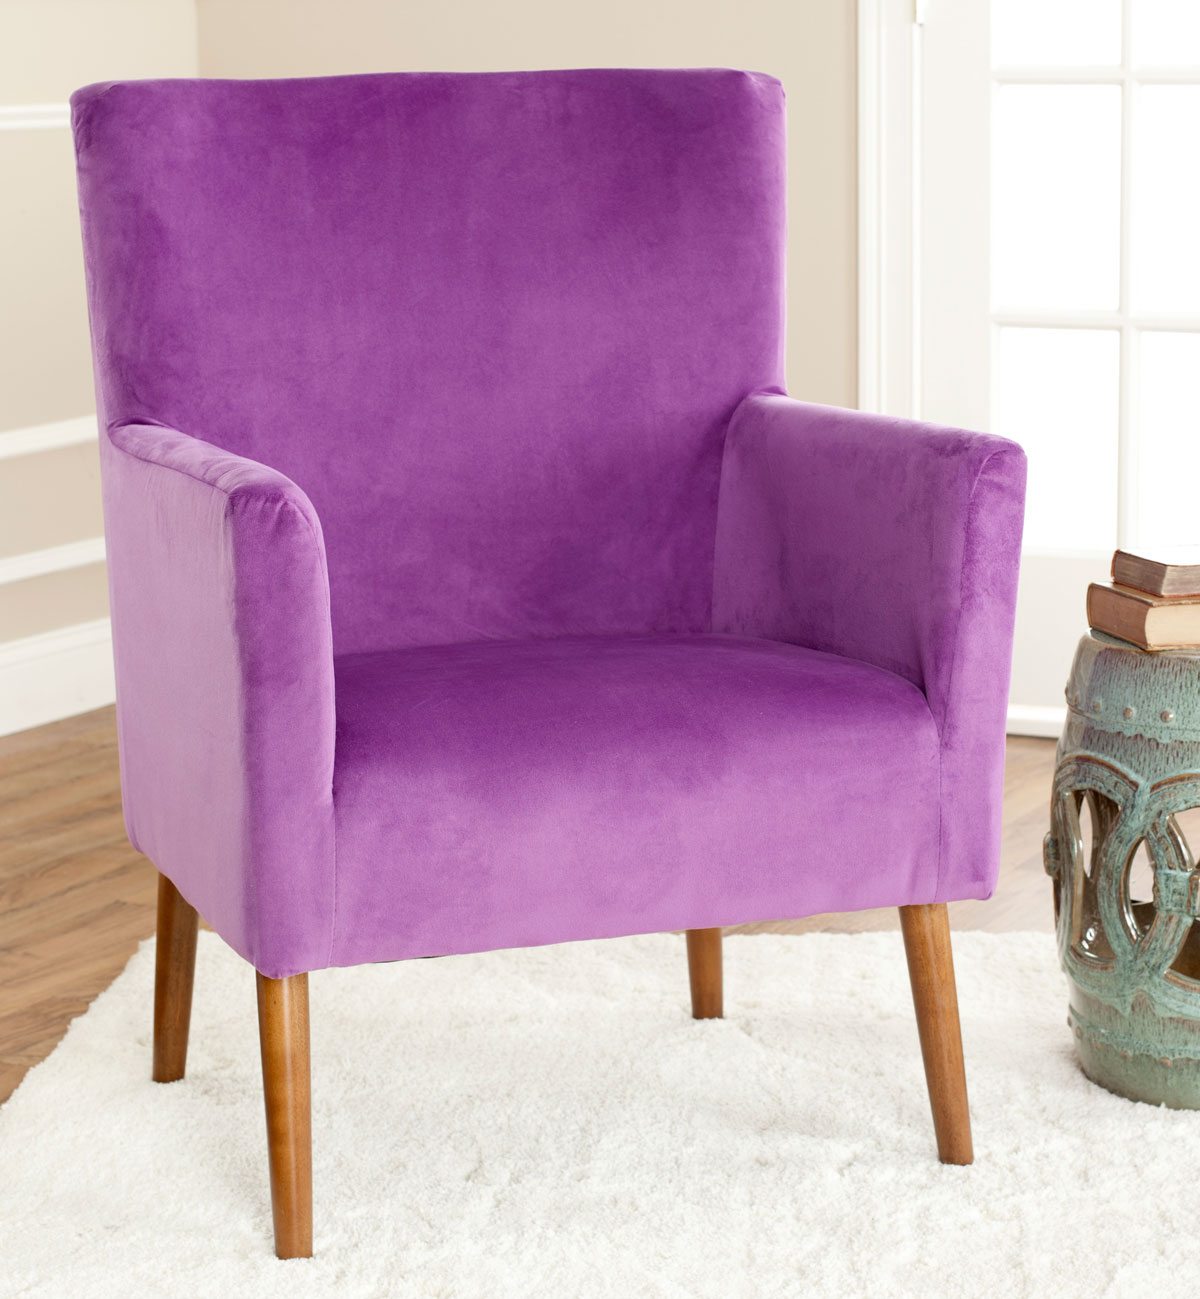 Lavender Chair Mcr4607a Accent Chairs Furniture By Safavieh